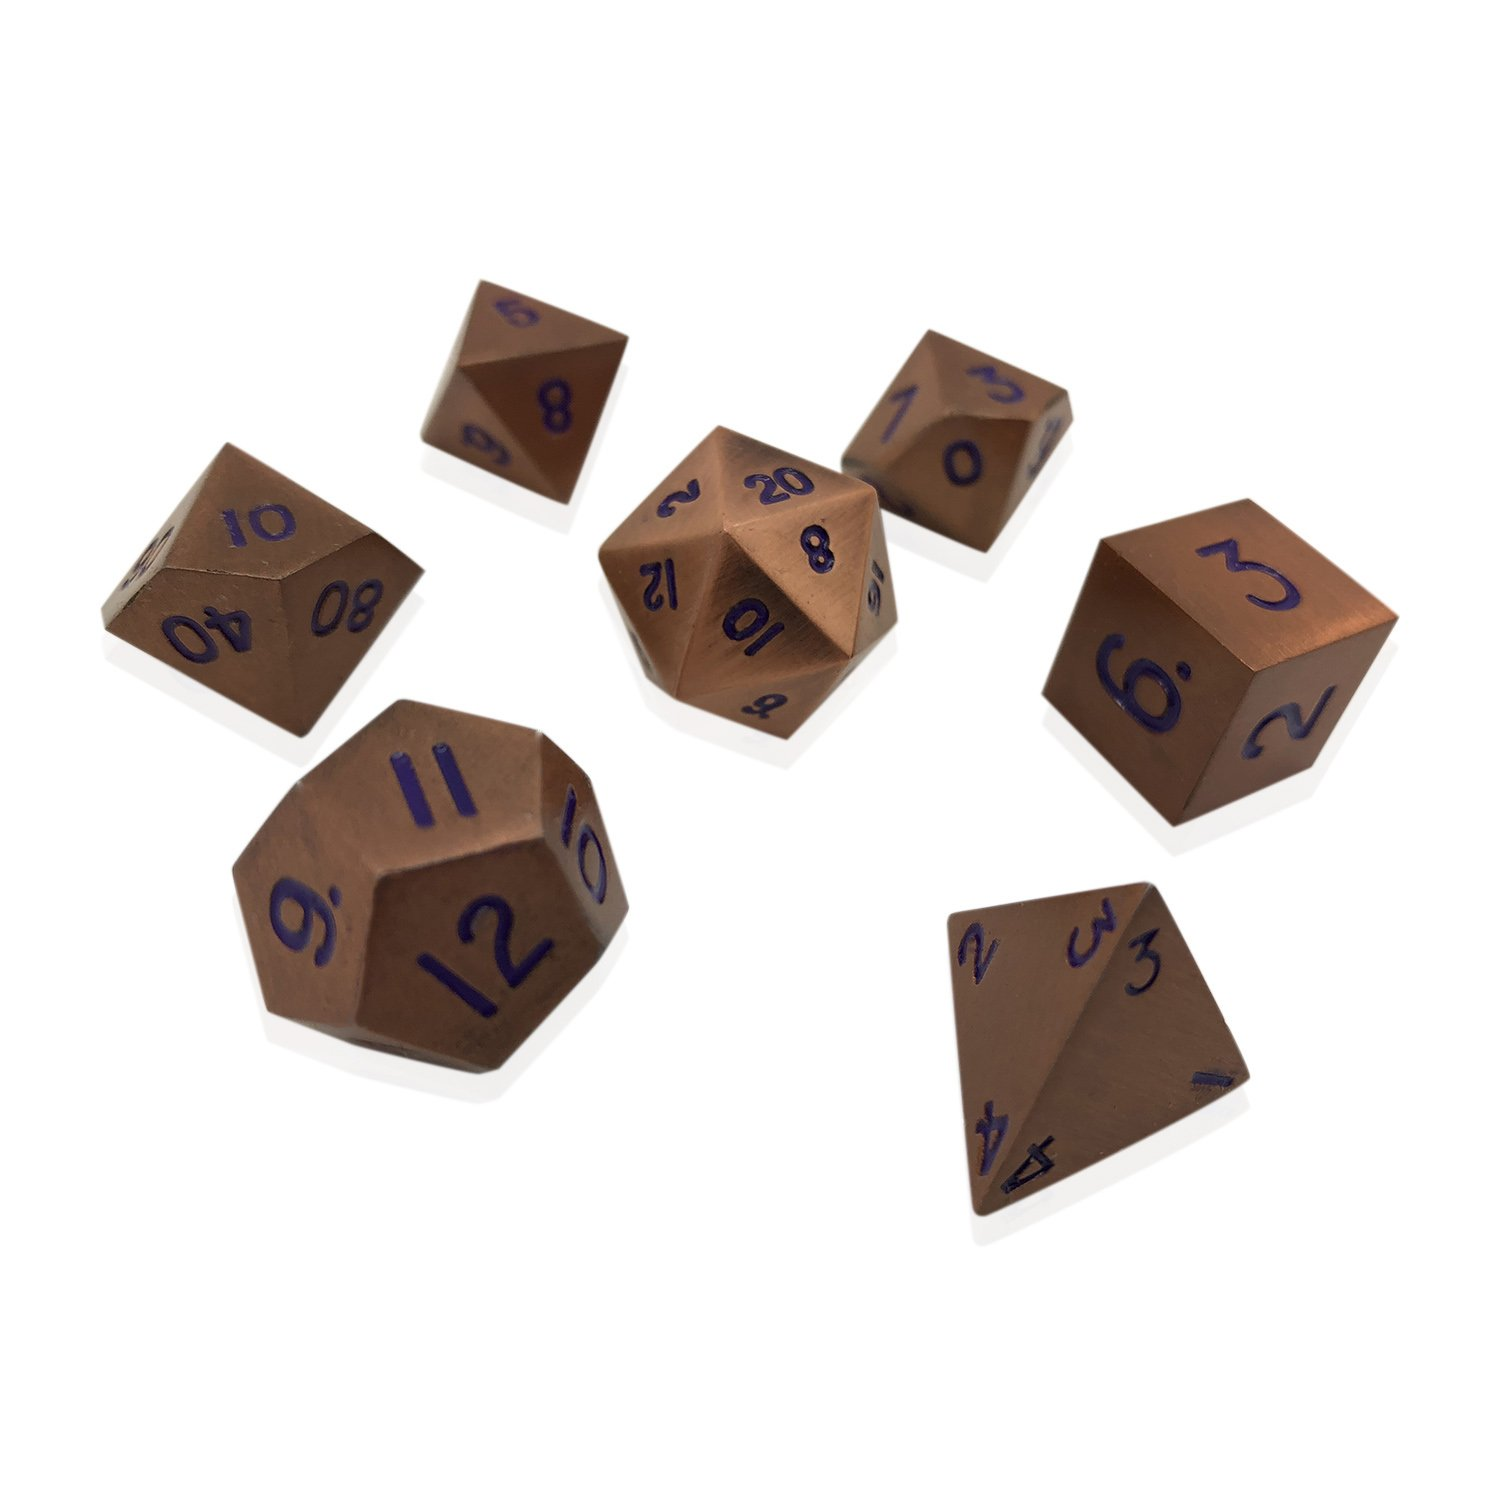 Norse Foundry Set of 7 Mystic Copper Full Metal Polyhedral Dice by RPG Math Games DnD Pathfinder ...